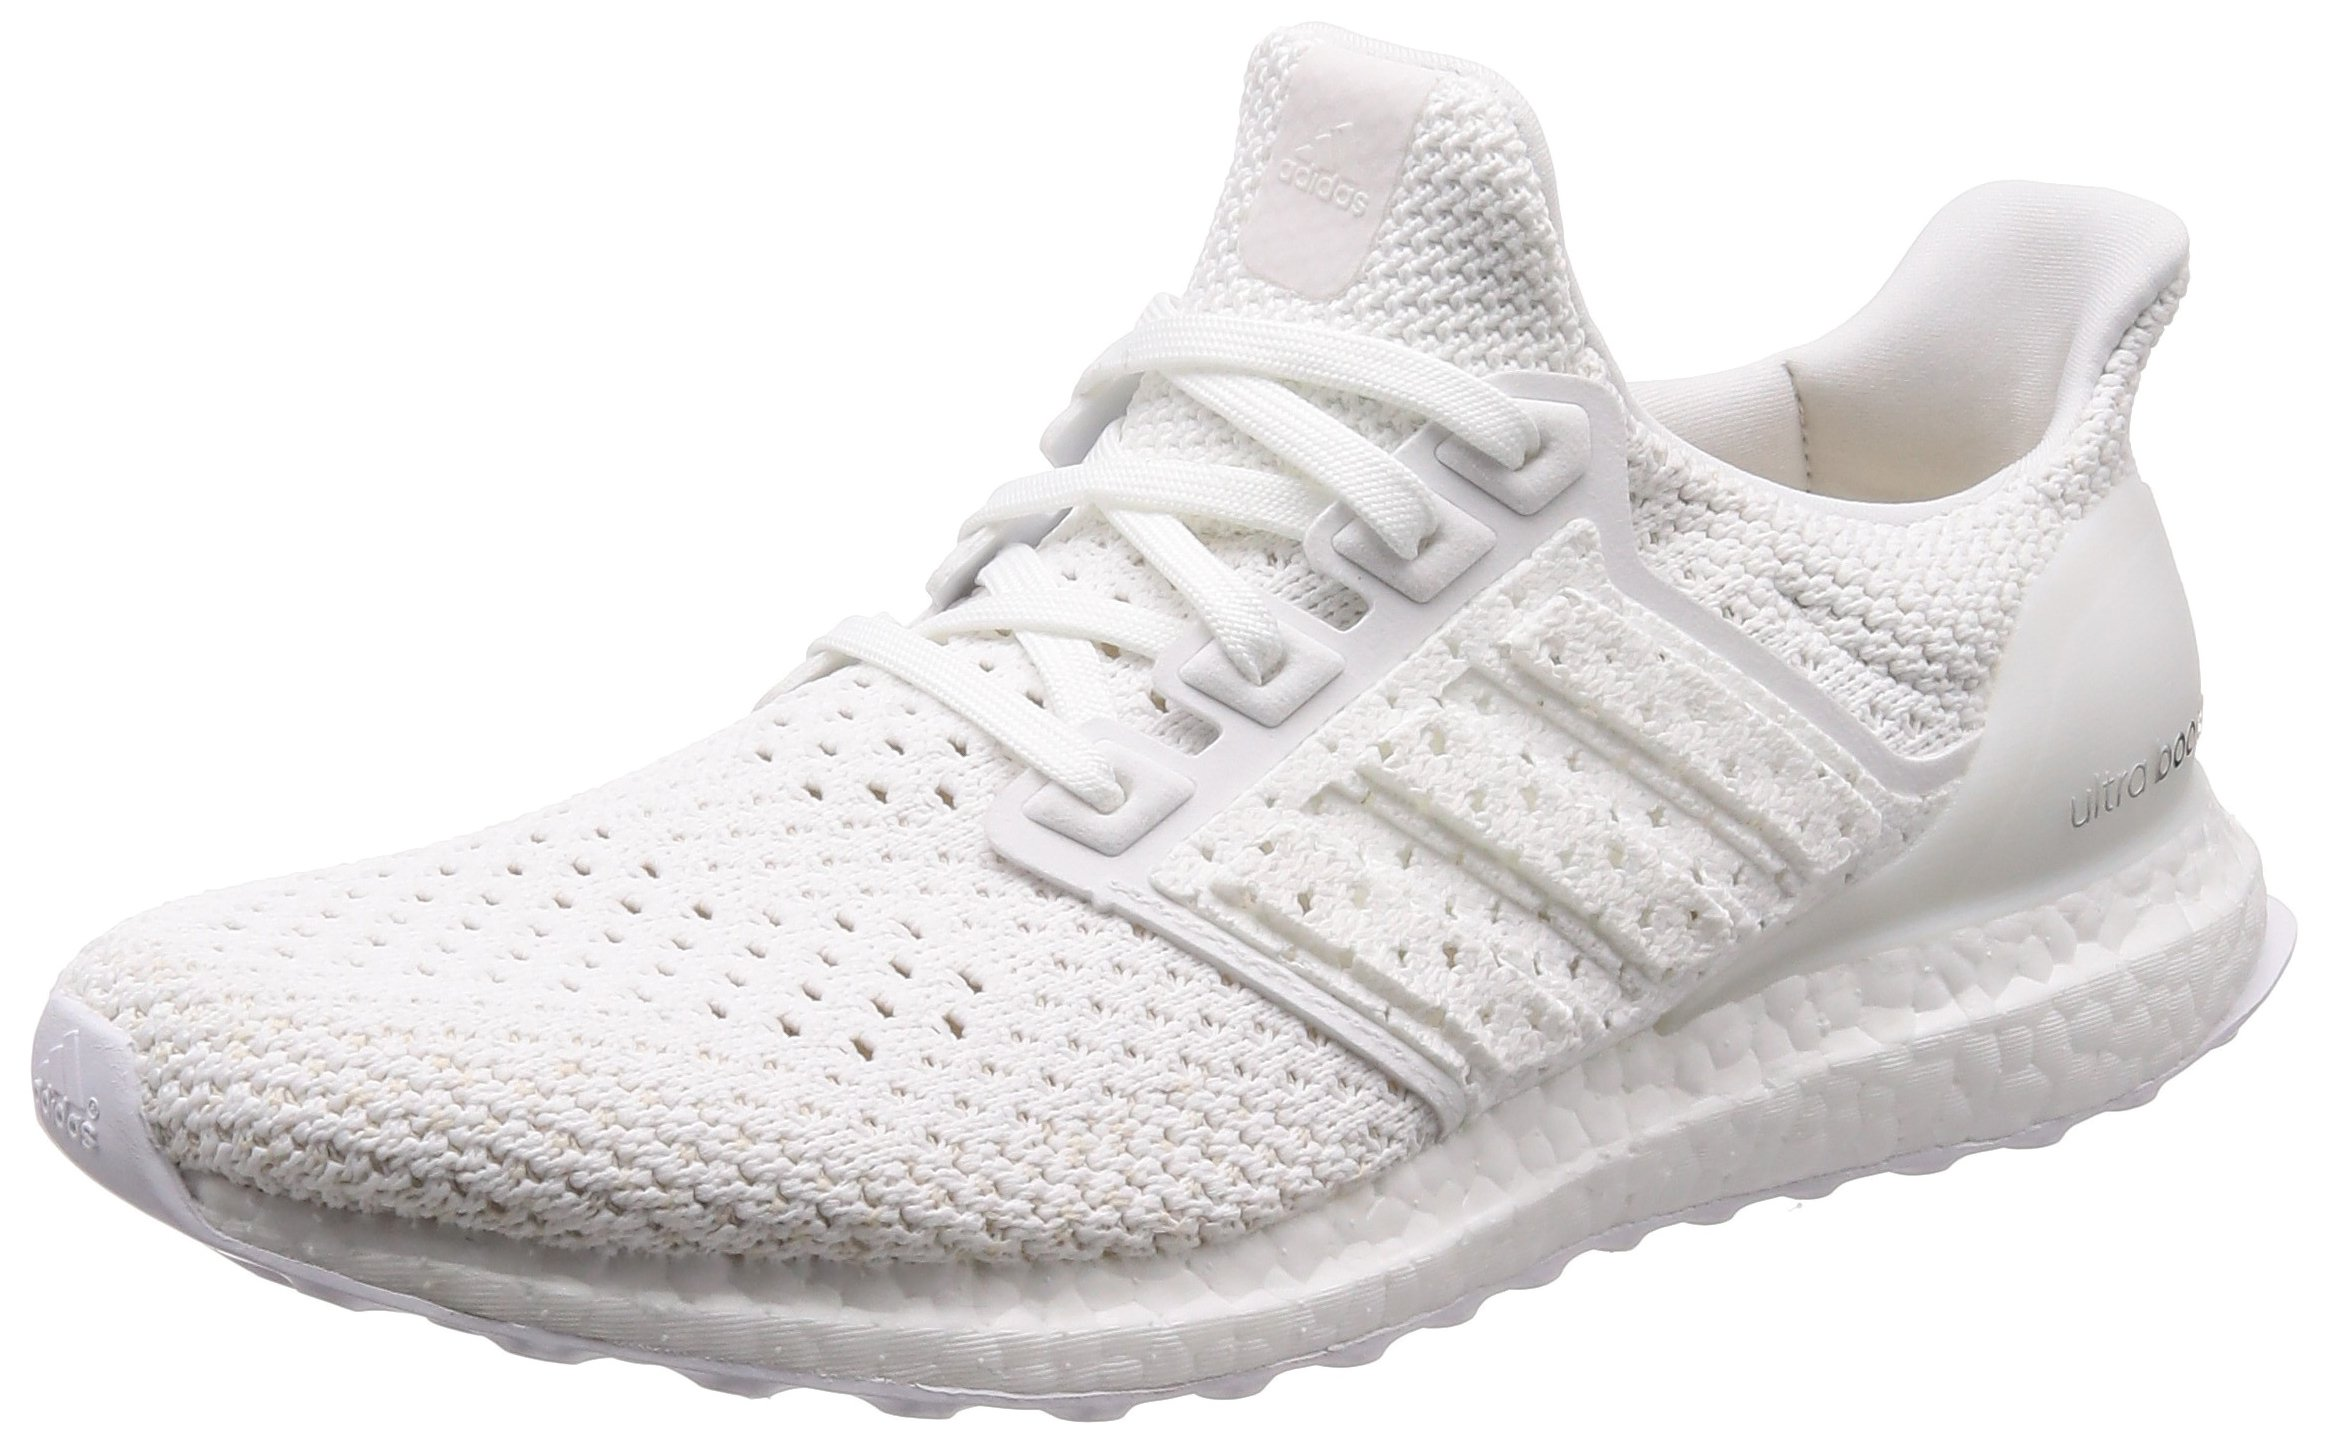 2645f01fe6a06 Galleon - Adidas Ultraboost Clima Running Shoes - SS18-8.5 - White